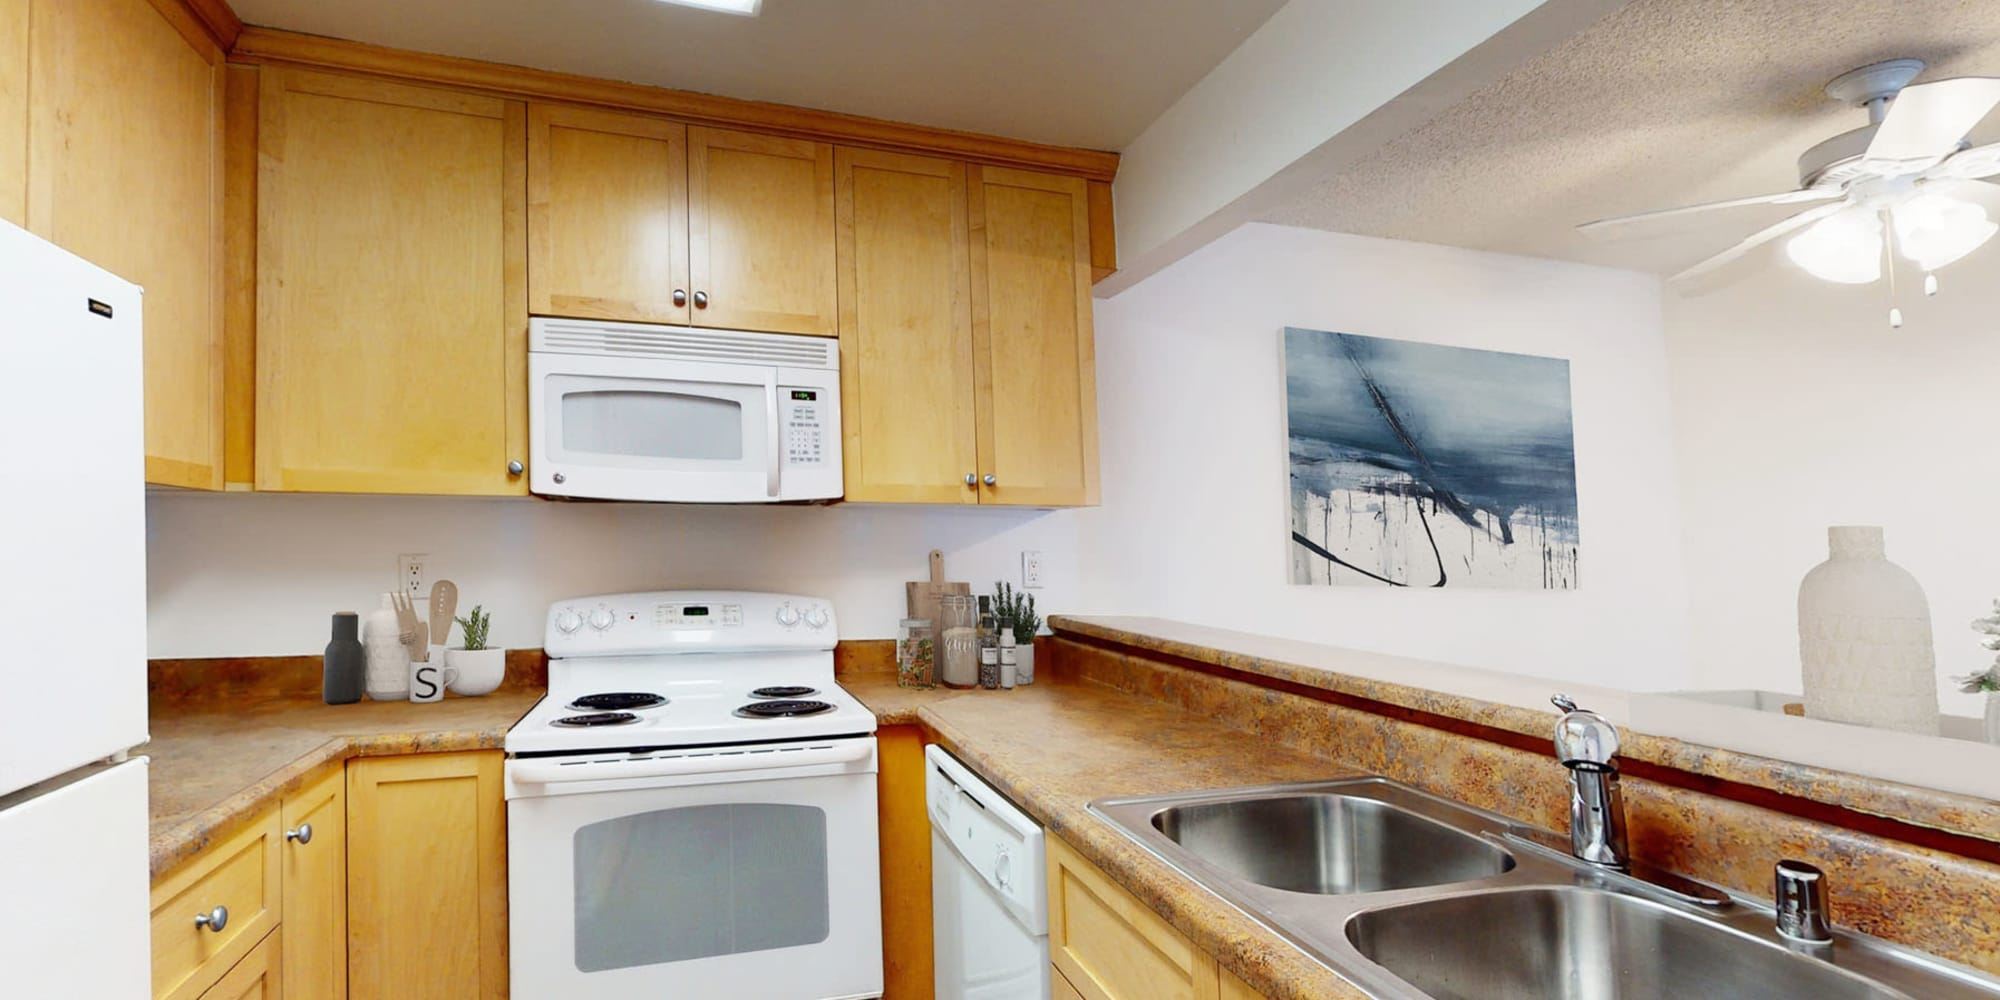 Wood cabinetry and a dual-basin sink in a model home's kitchen at Mariners Village in Marina del Rey, California